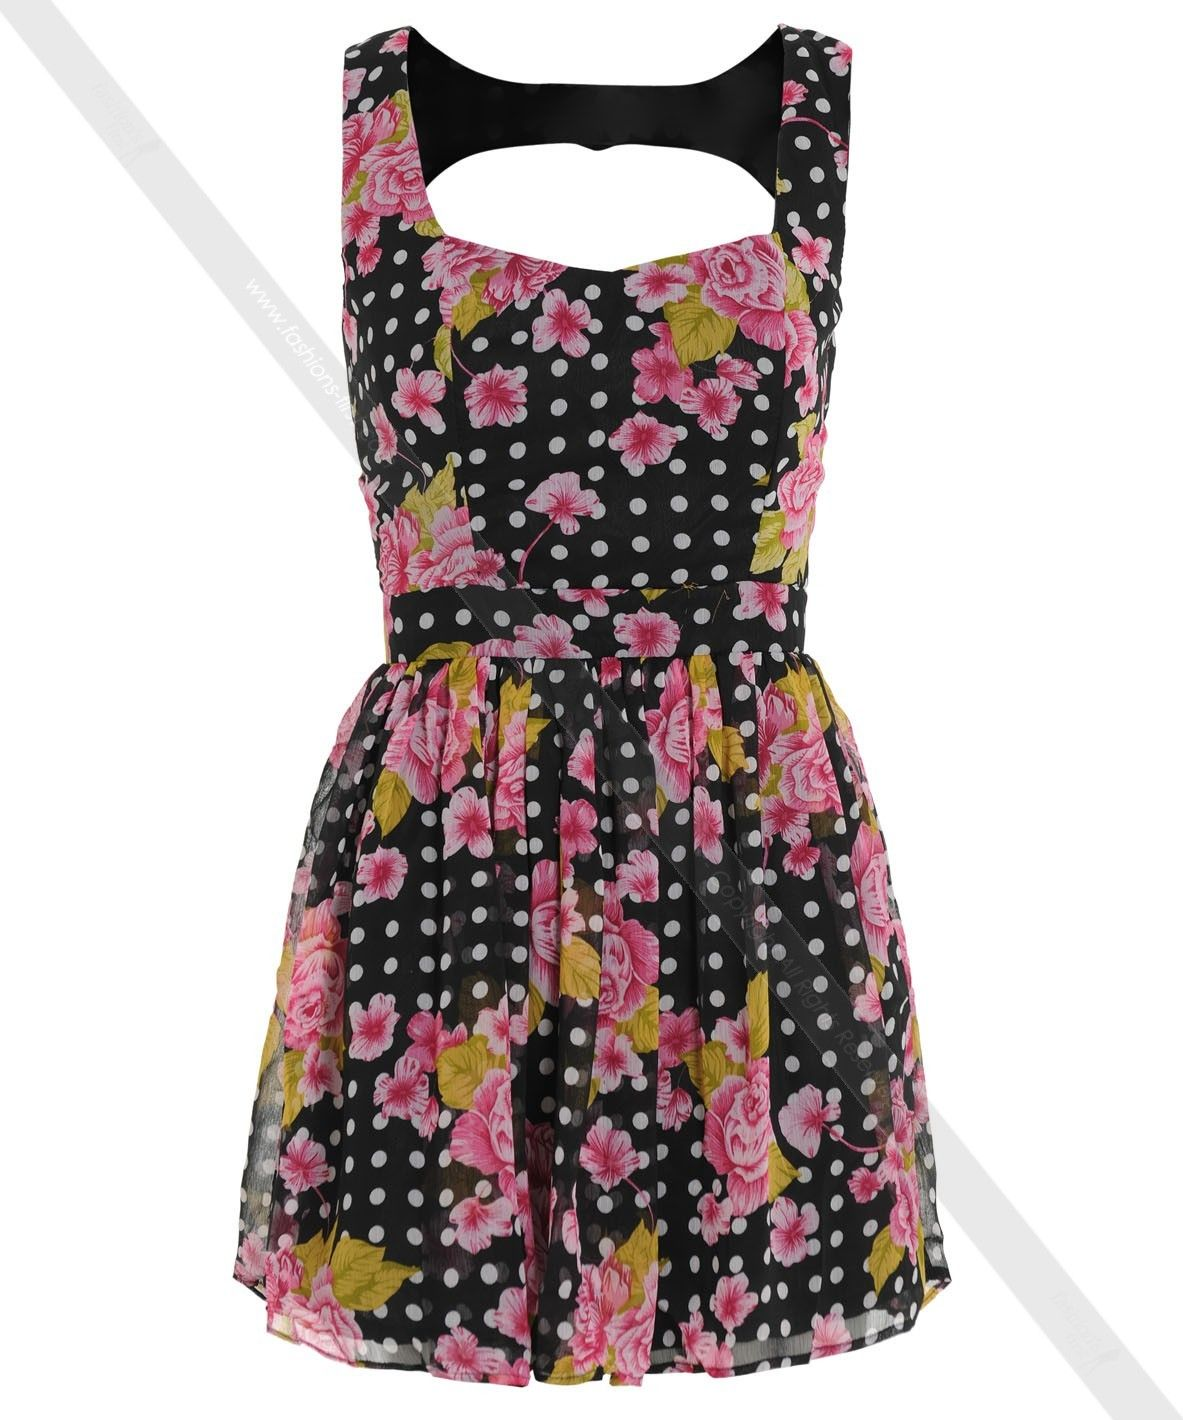 http://www.fashions-first.co.uk/women/dresses/kleid-k1391.html Fashions-First one of the famous online wholesaler of fashion cloths, urban cloths, accessories, men's fashion cloths, bag's, shoes, jewellery. Products are regularly updated. So please visit and get the product you like. #Fashion #Women #dress #top #jeans #leggings #jacket #cardigan #sweater #summer #autumn #pullover #bags #handbags #shoe